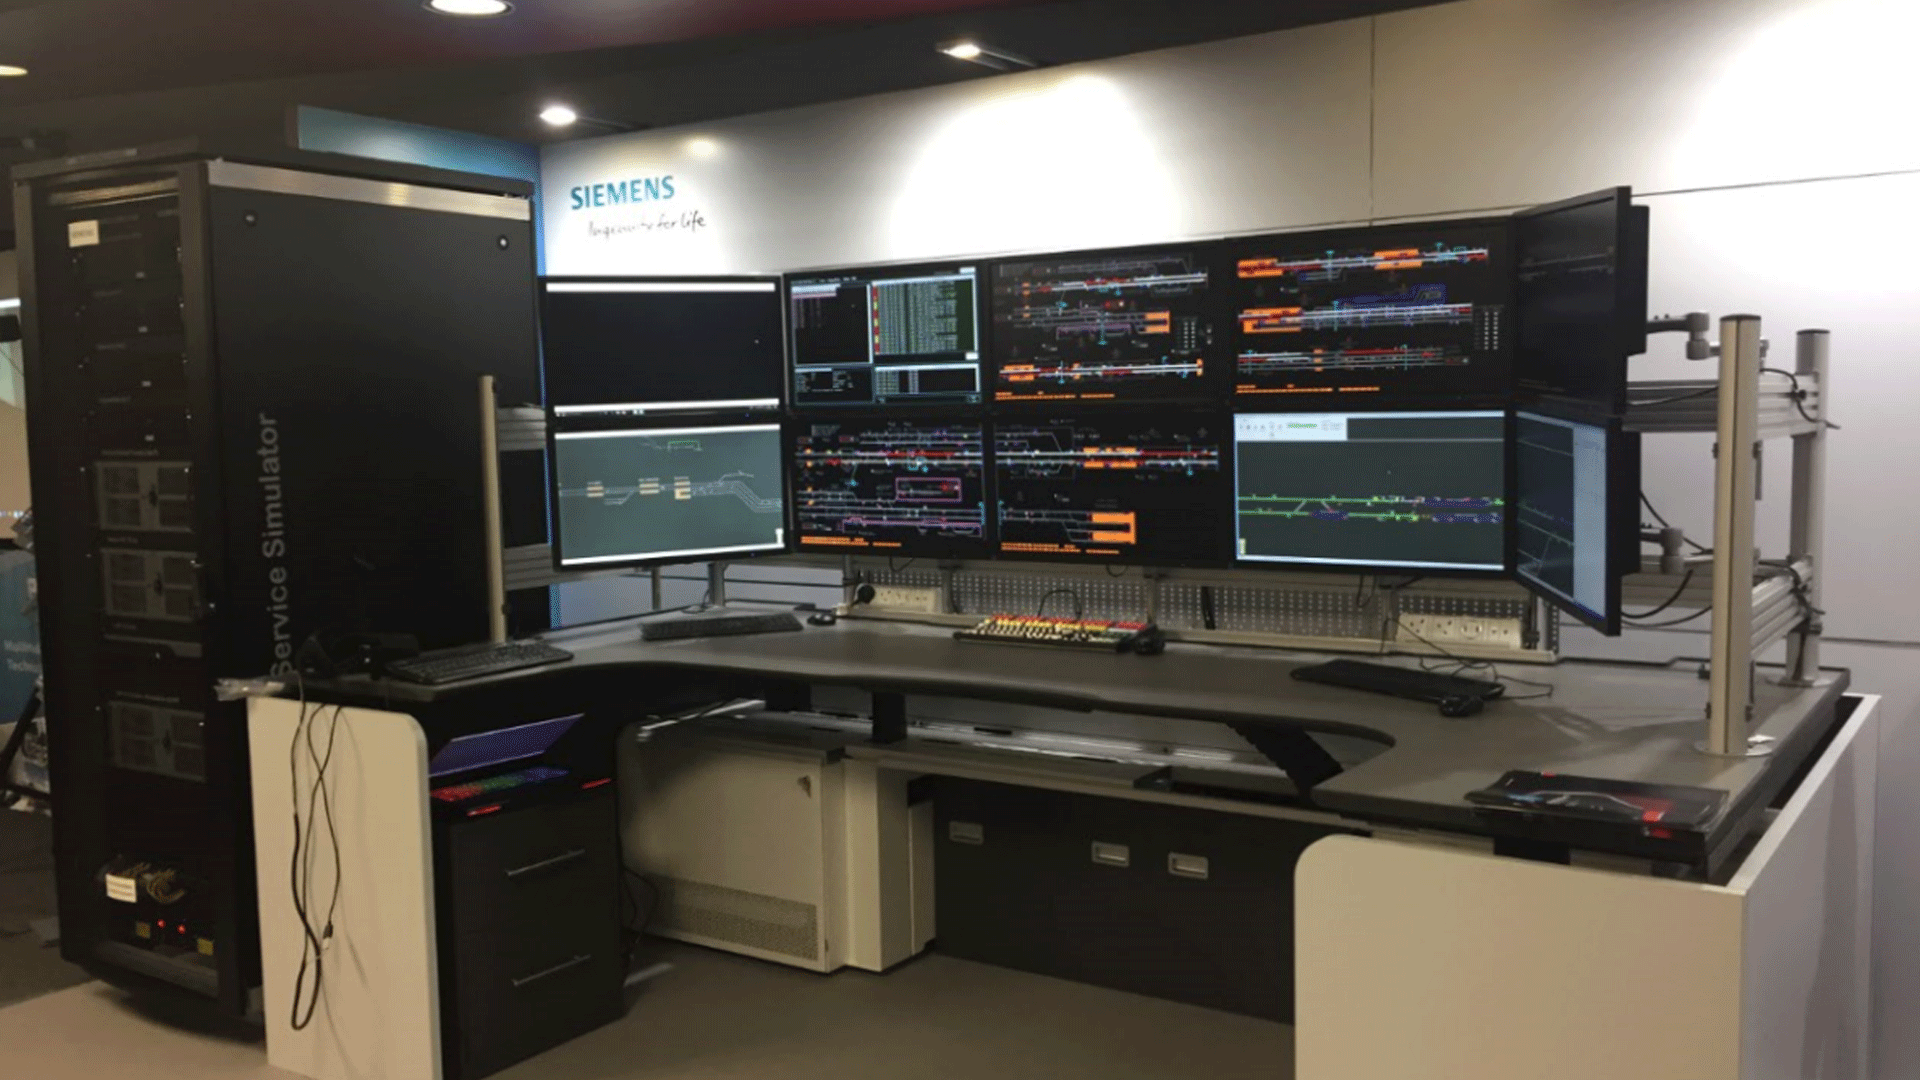 Siemens Rail Automation showcases an IP-based simulation system